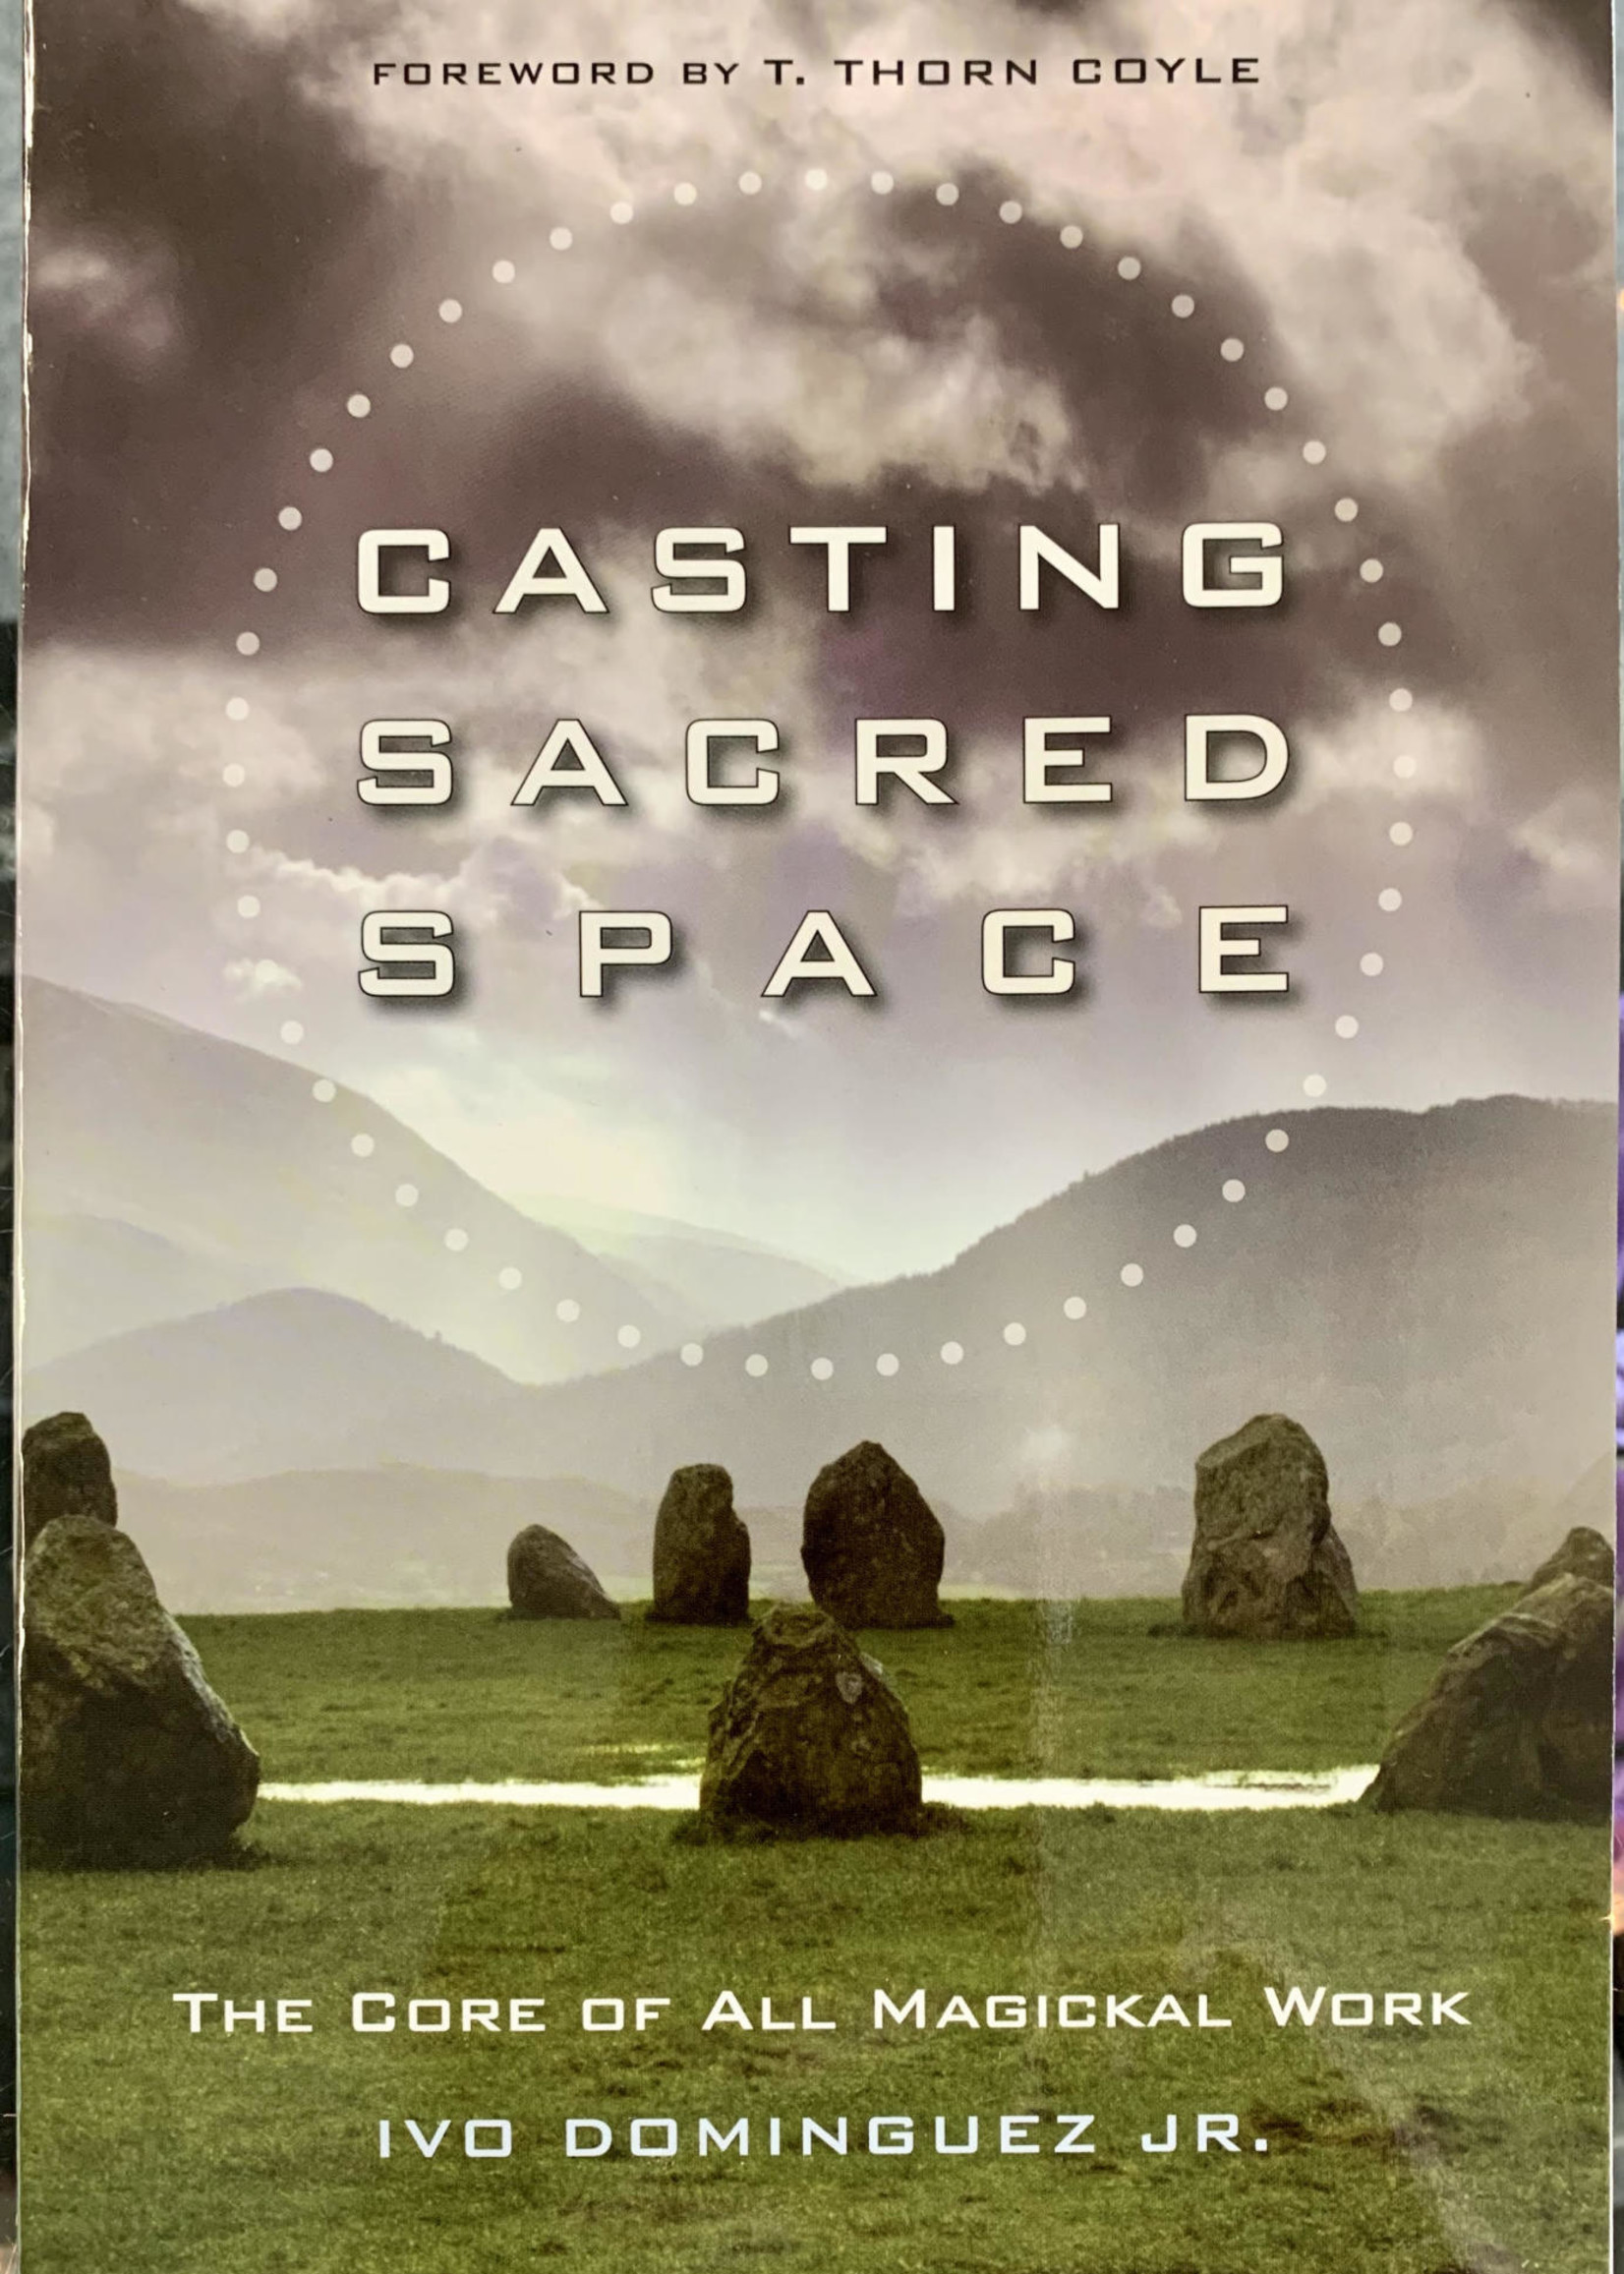 Casting Sacred Space The Core of All Magickal Work - Ivo Dominguez, Jr., Foreword by T. Thorn Coyle